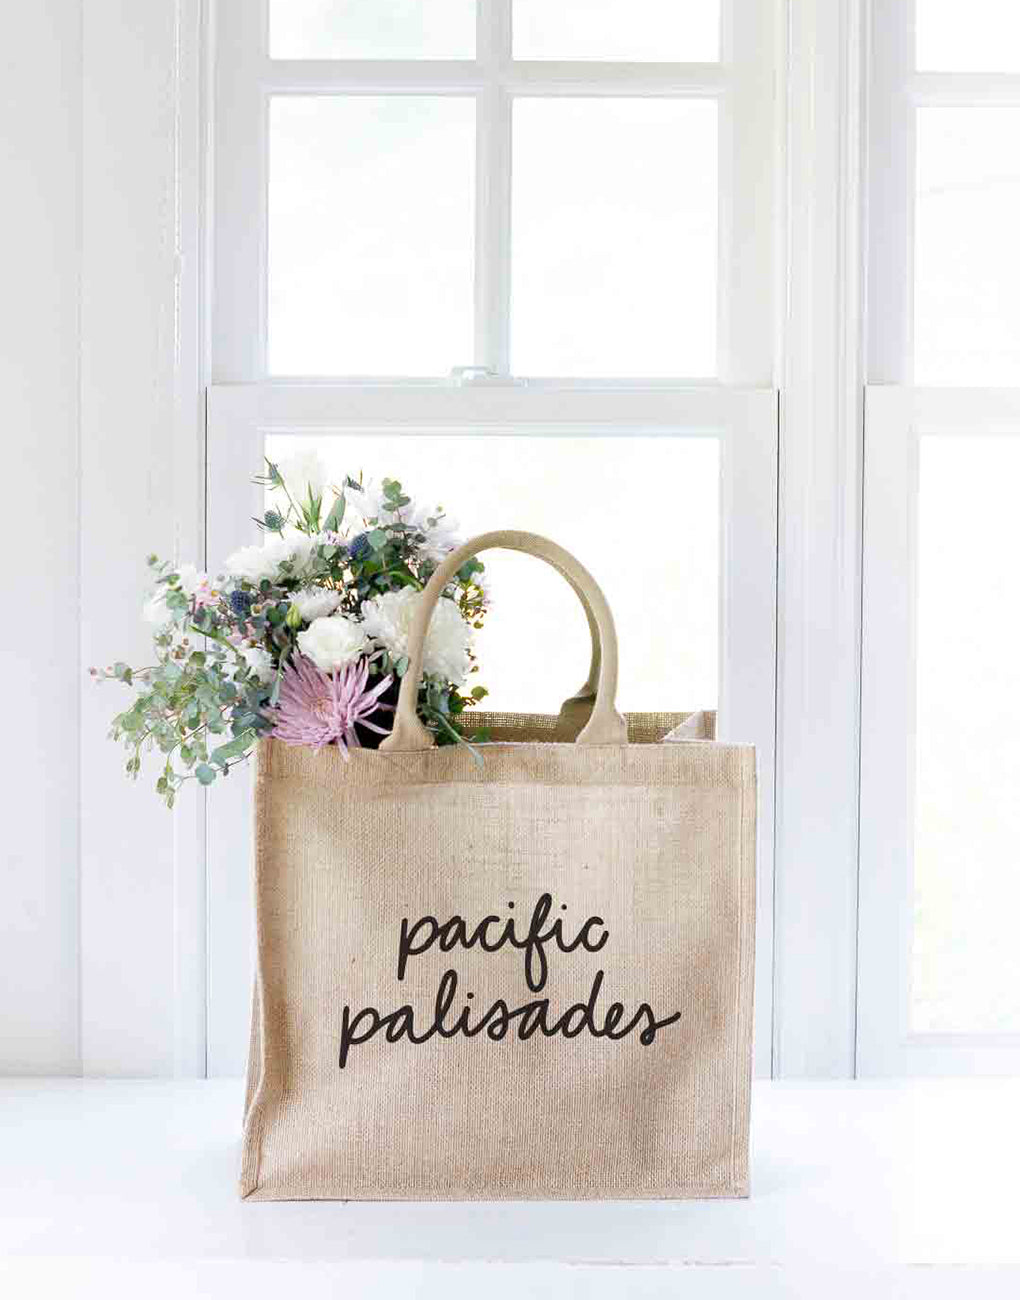 Large Pacific Palisades Purposefull Shopping Tote In Black Font With Flowers | The Little Market